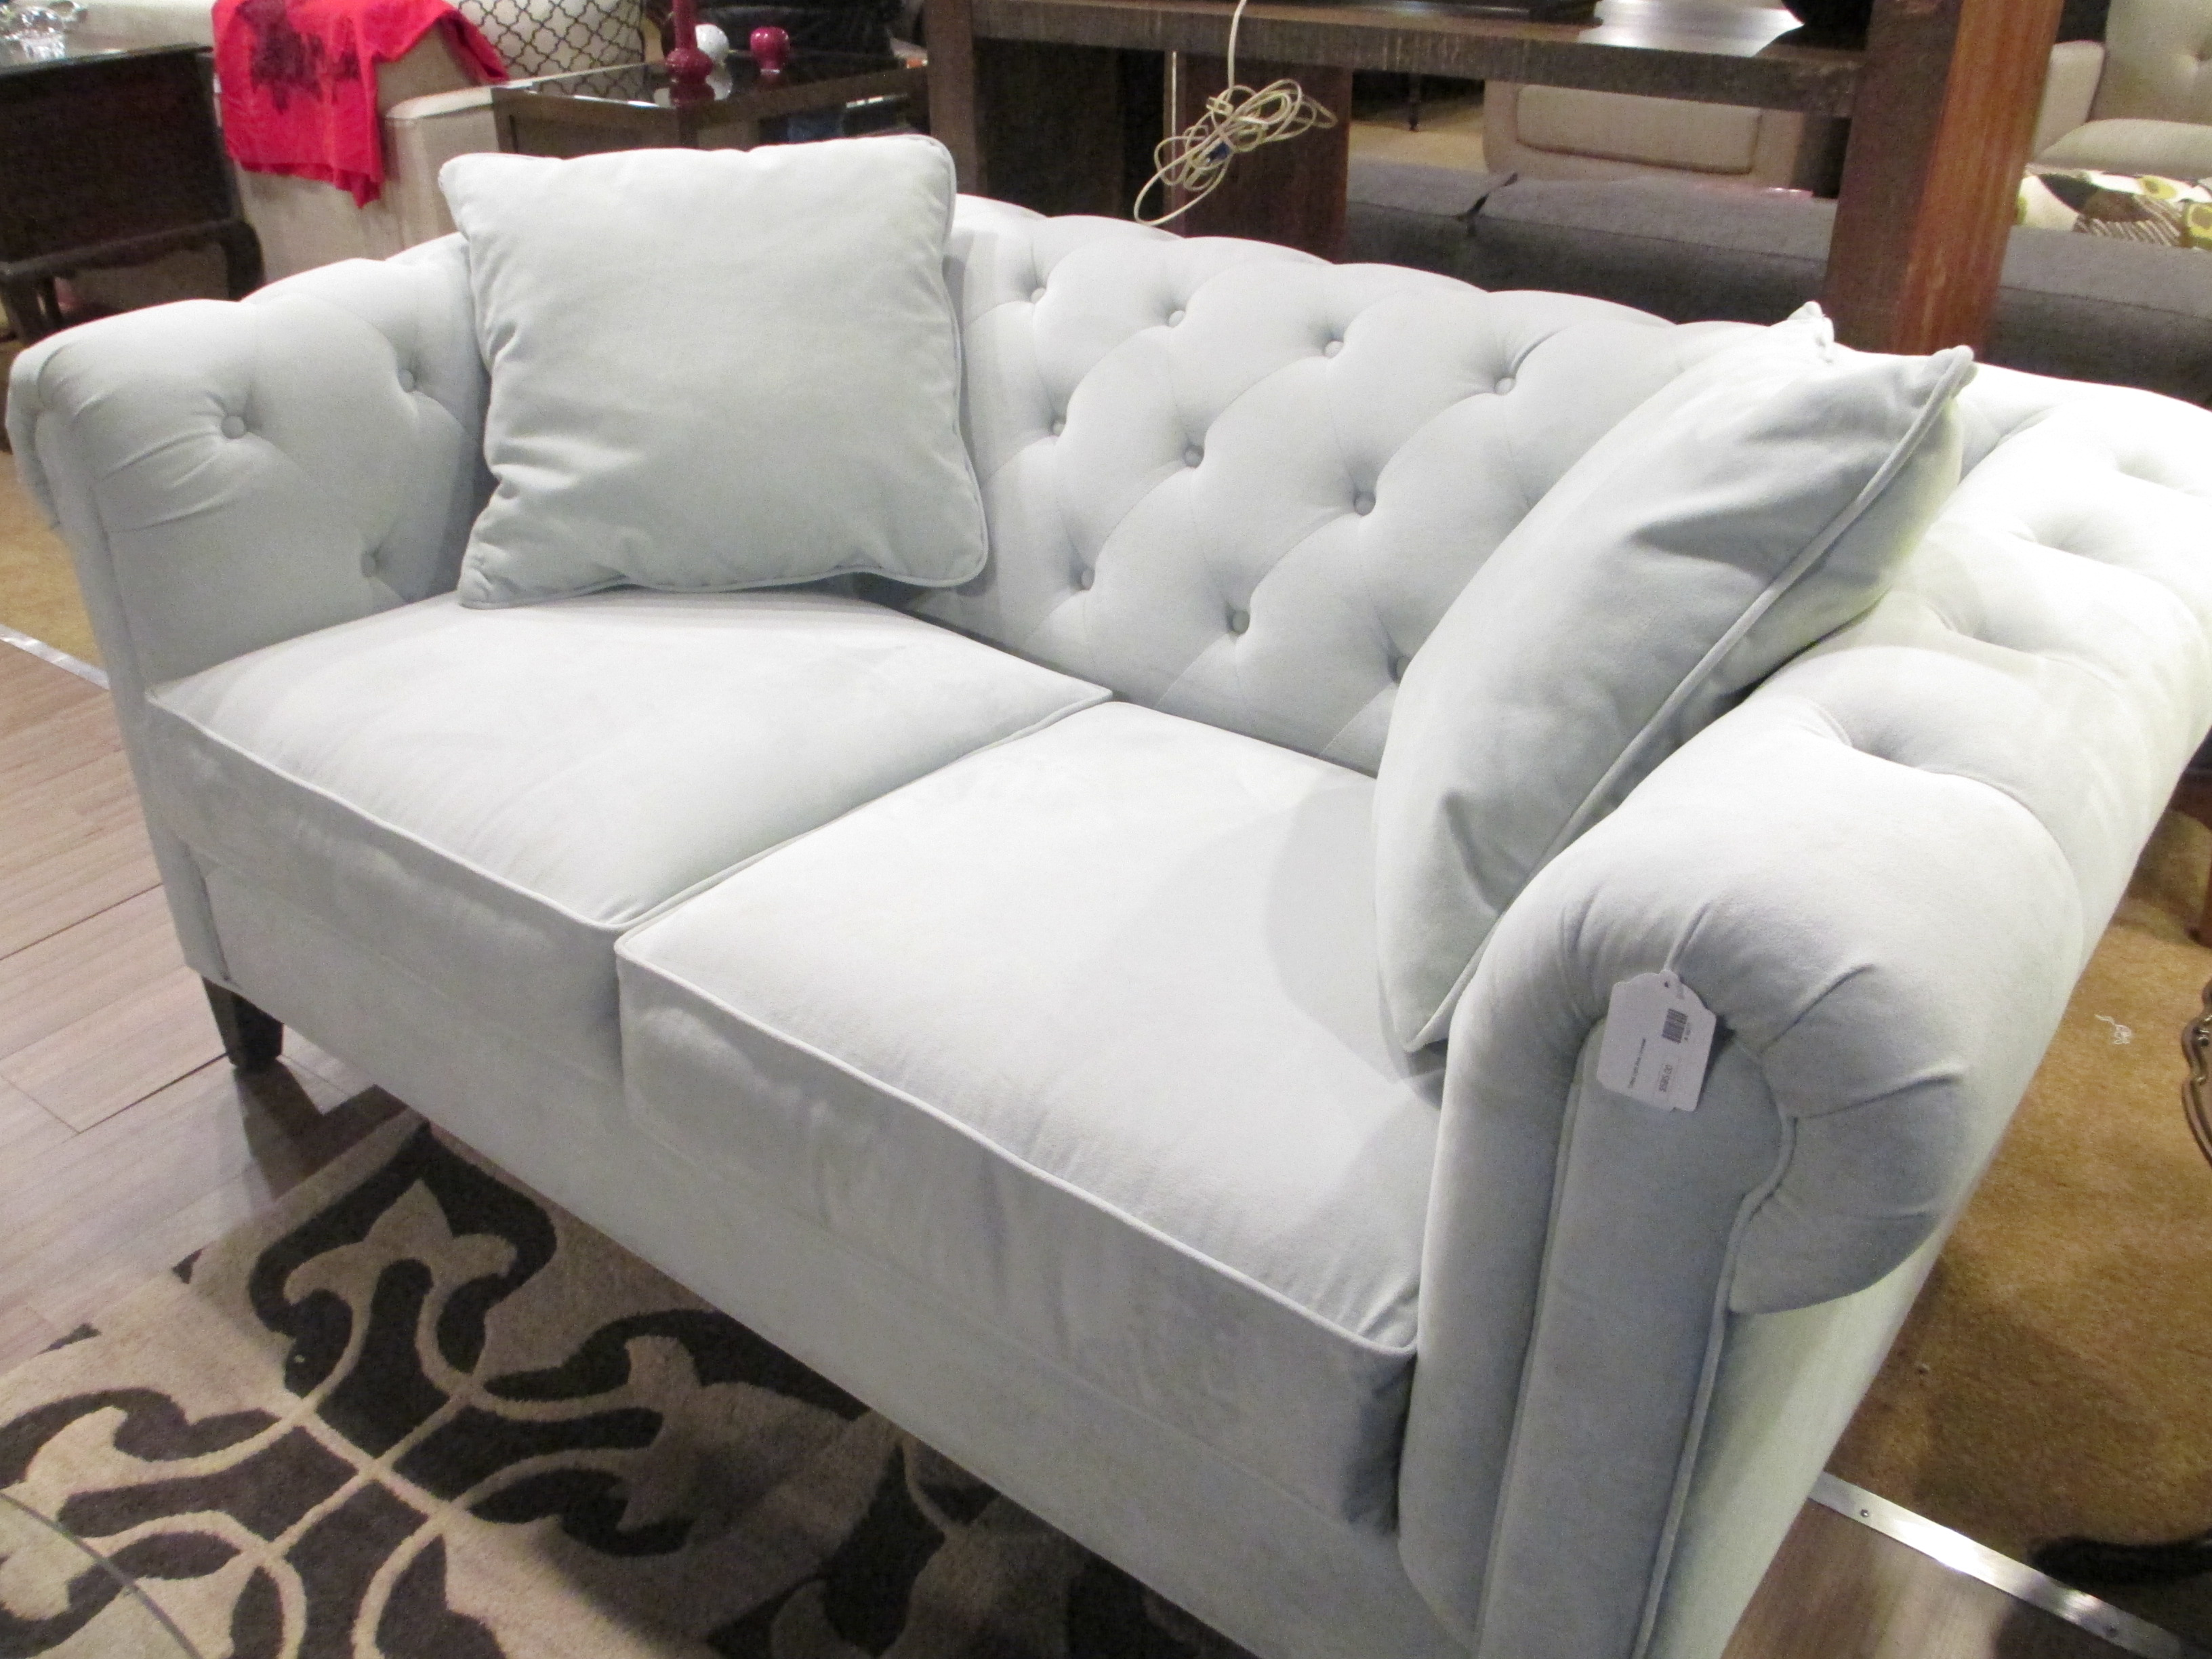 Bettsofa Joy Velour Sofa Velour Couch Blue Tufted Couch Medium Size Of Blue